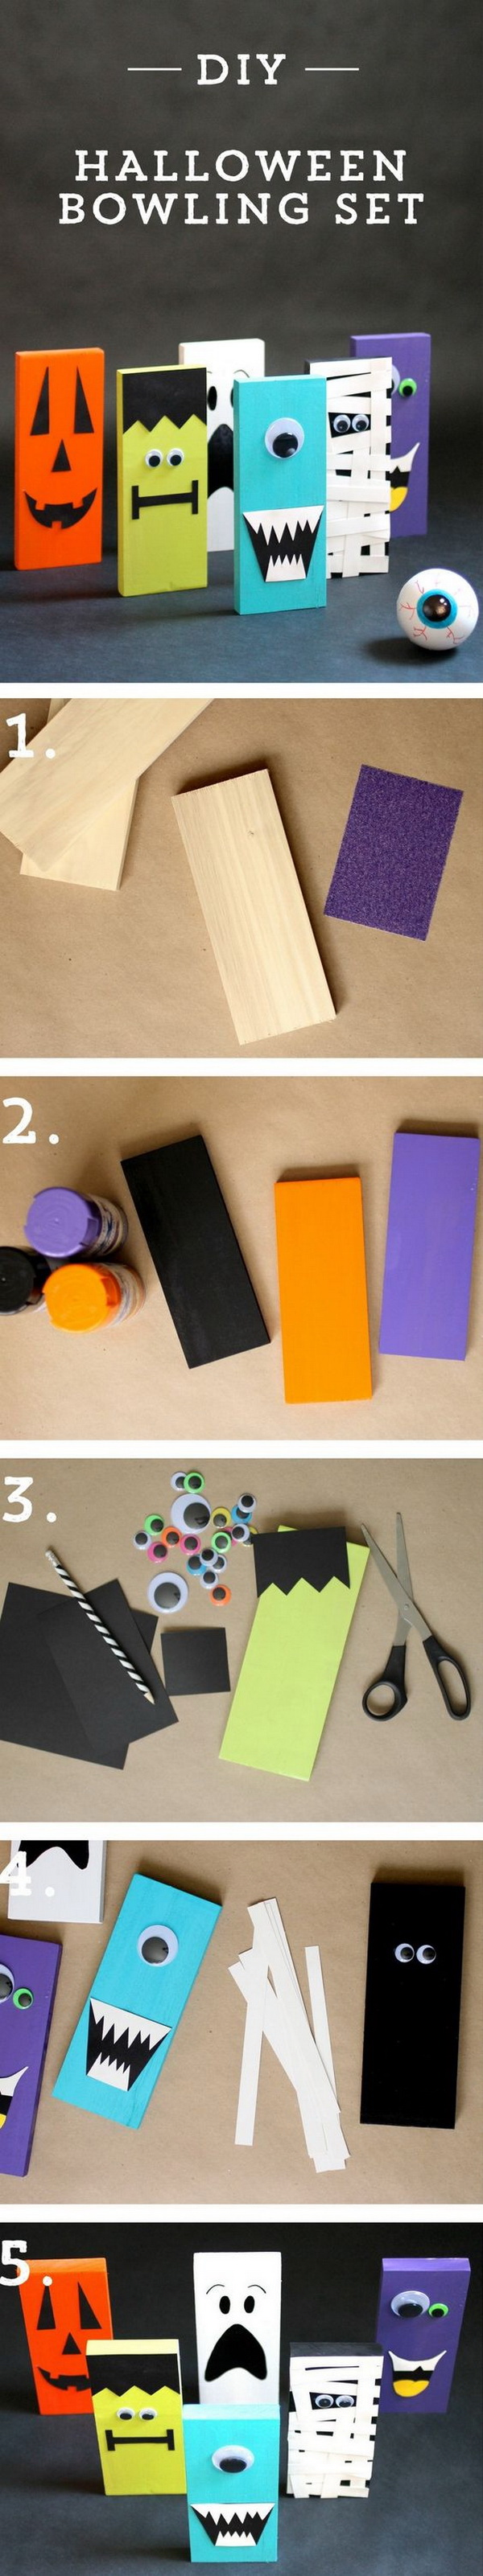 DIY Halloween Bowling Set. Create these adorable halloween bowling set with cute monster and jack-o'-lantern faces to entertain your guests for this Holiday party. Or you can set them together as a holiday decoration on the mantel or in your classroom.